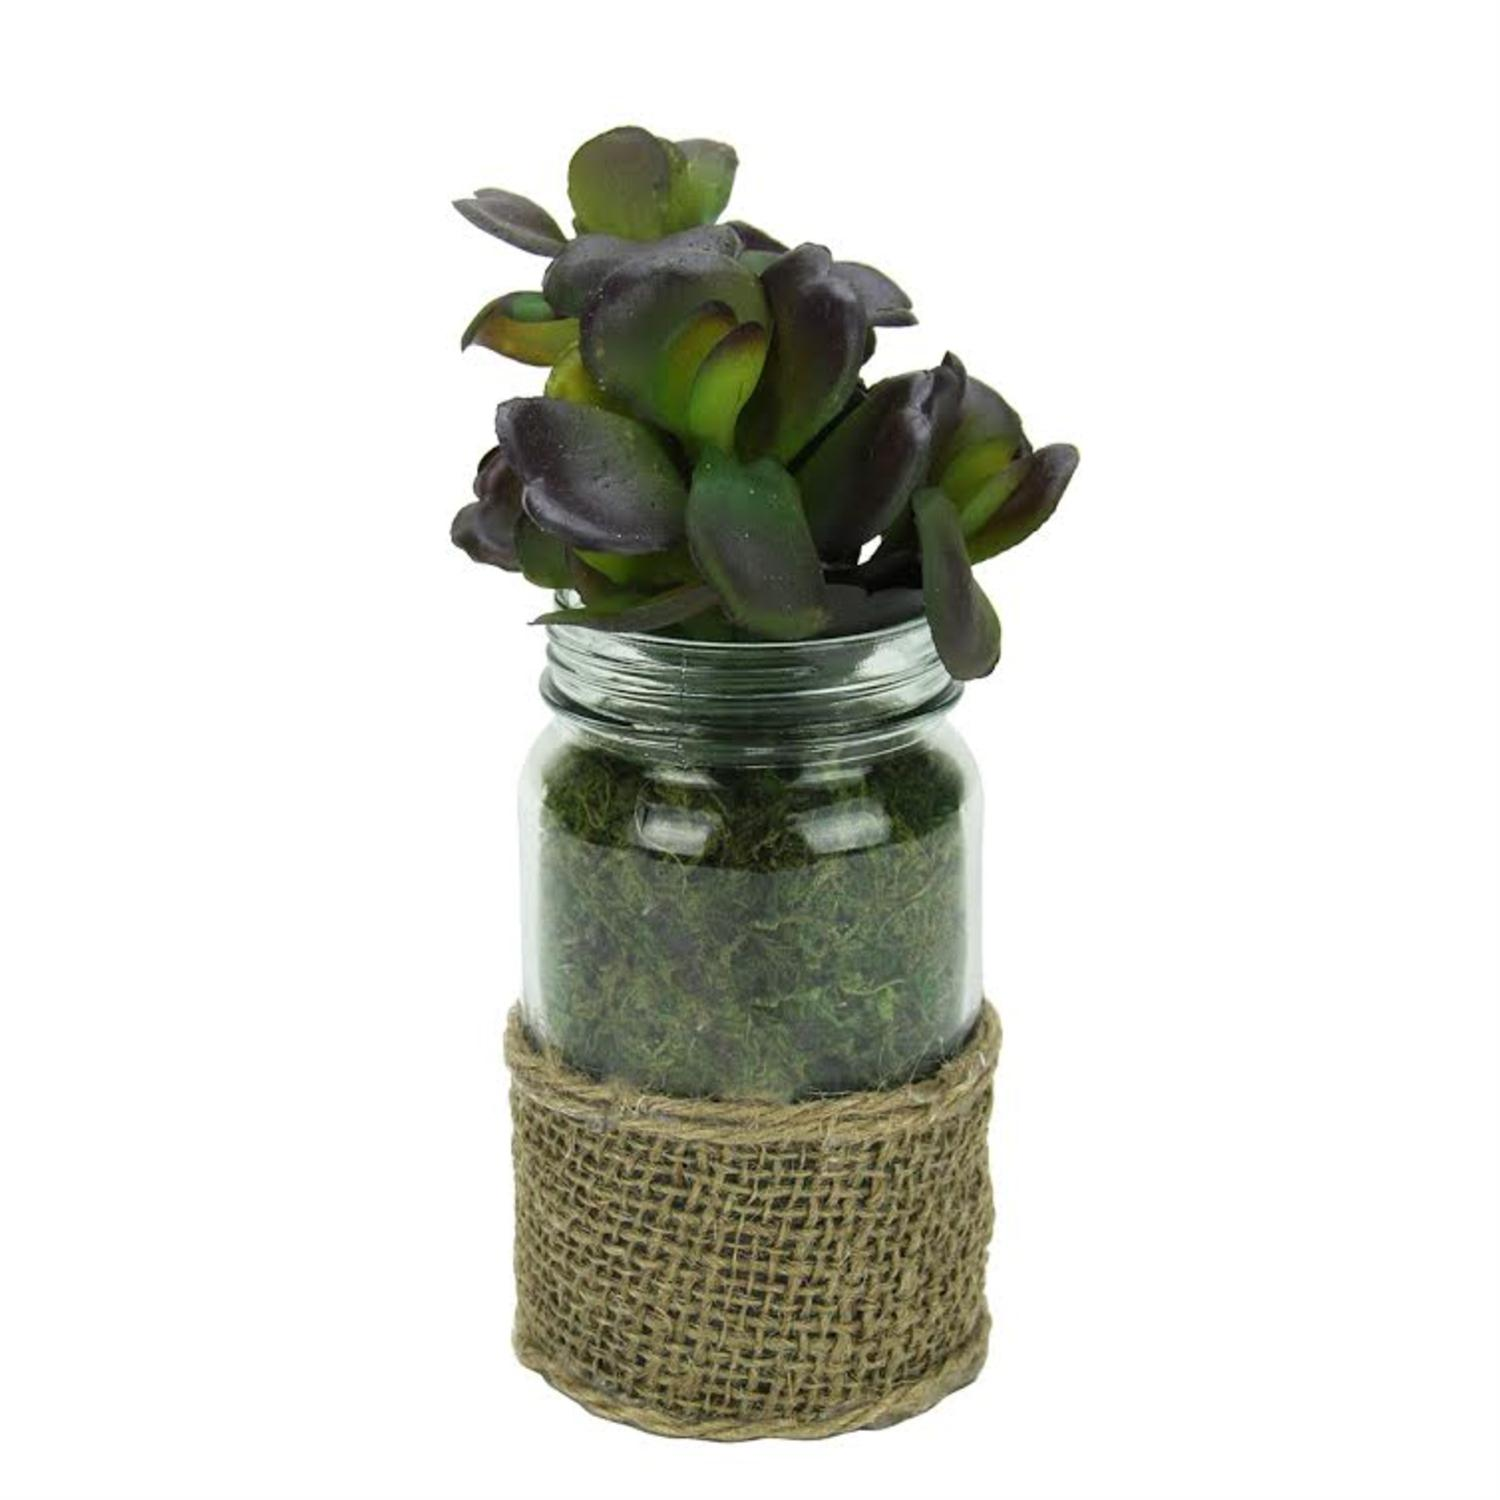 "7.5"" Green and Brown Potted Artificial Jade Succulent Plant in Glass Jar with Burlap Grip"